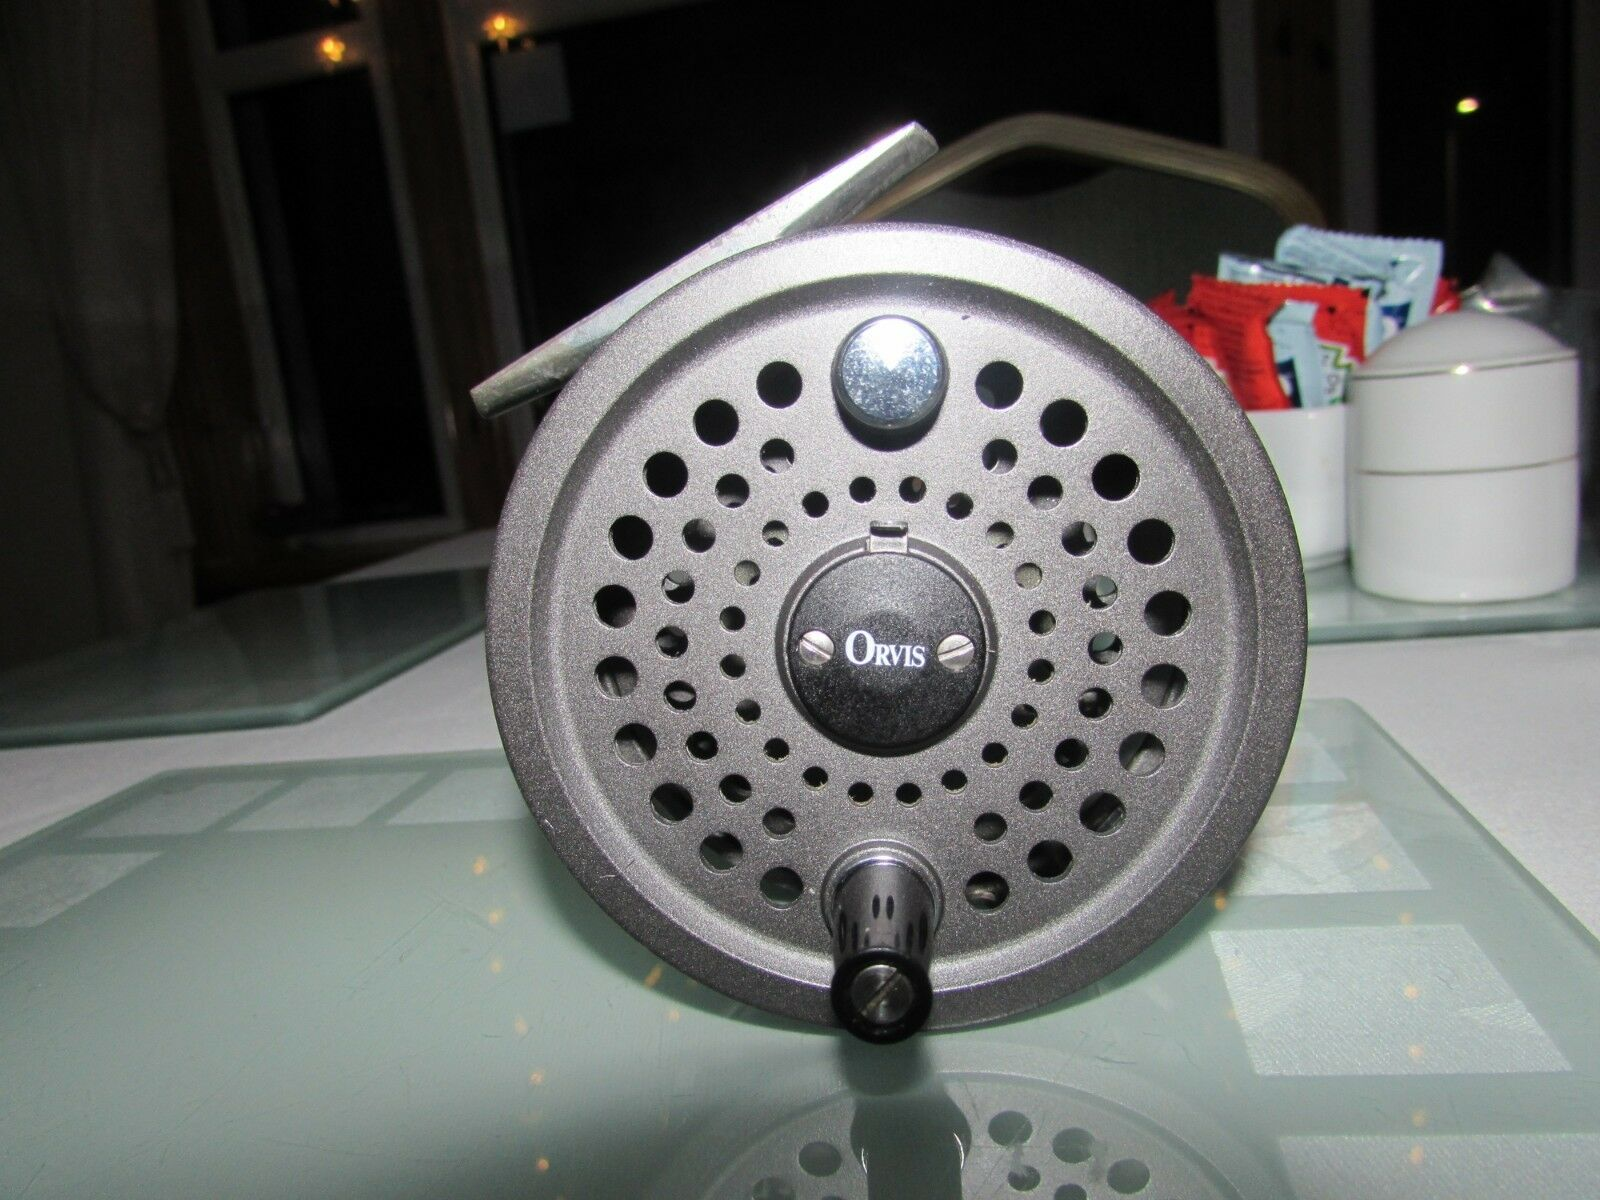 Very good orvis battenkill disc england 8 9 trout fly fishing reel 3 + 3 8ths